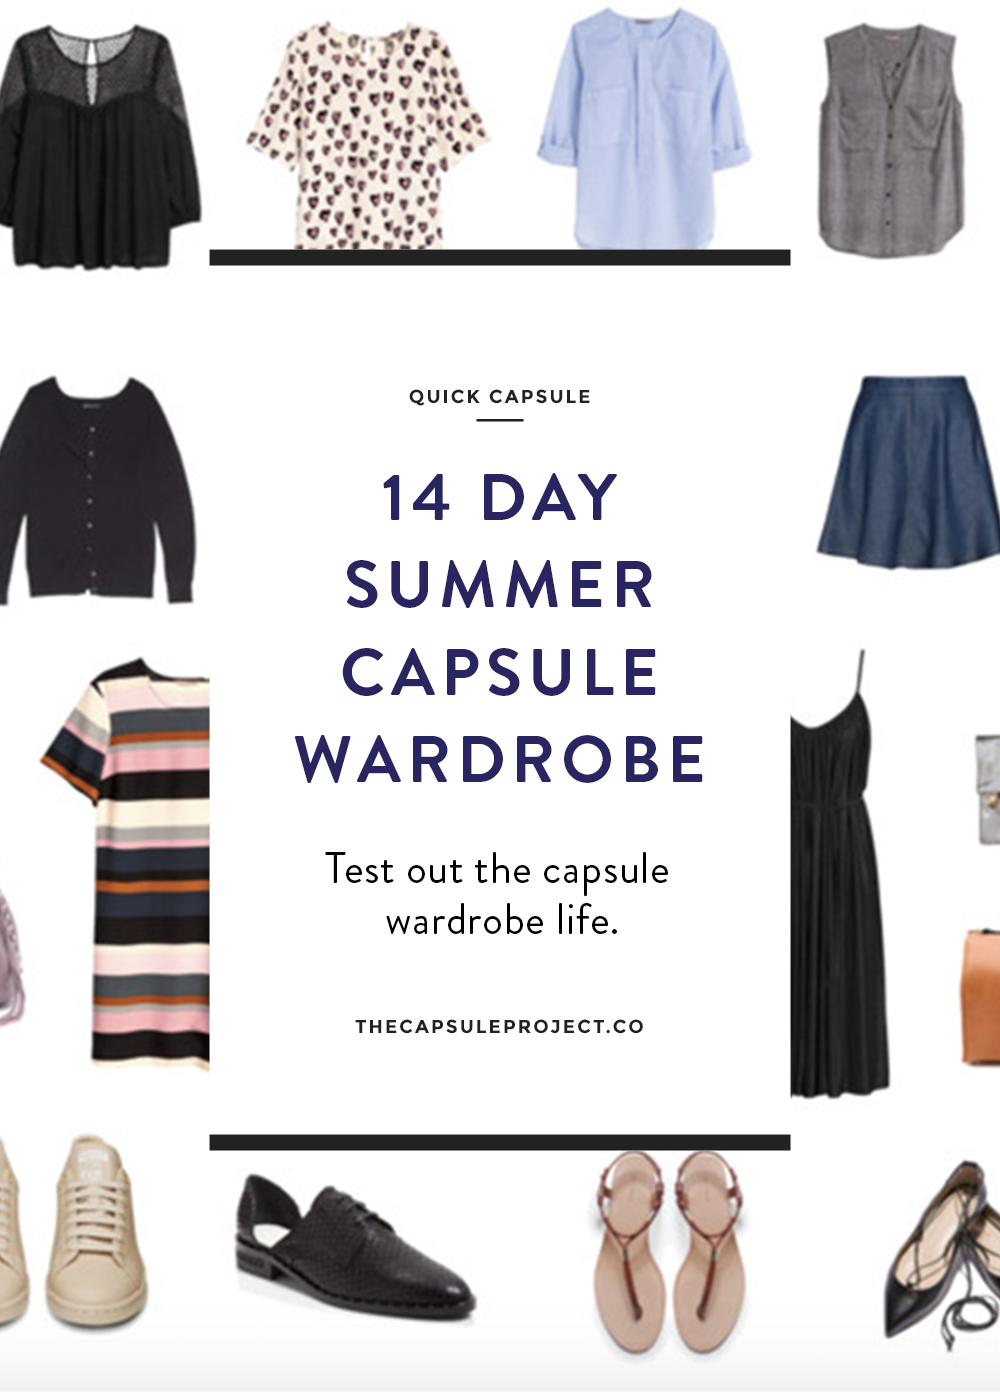 14 Day Summer Capsule Wardrobe